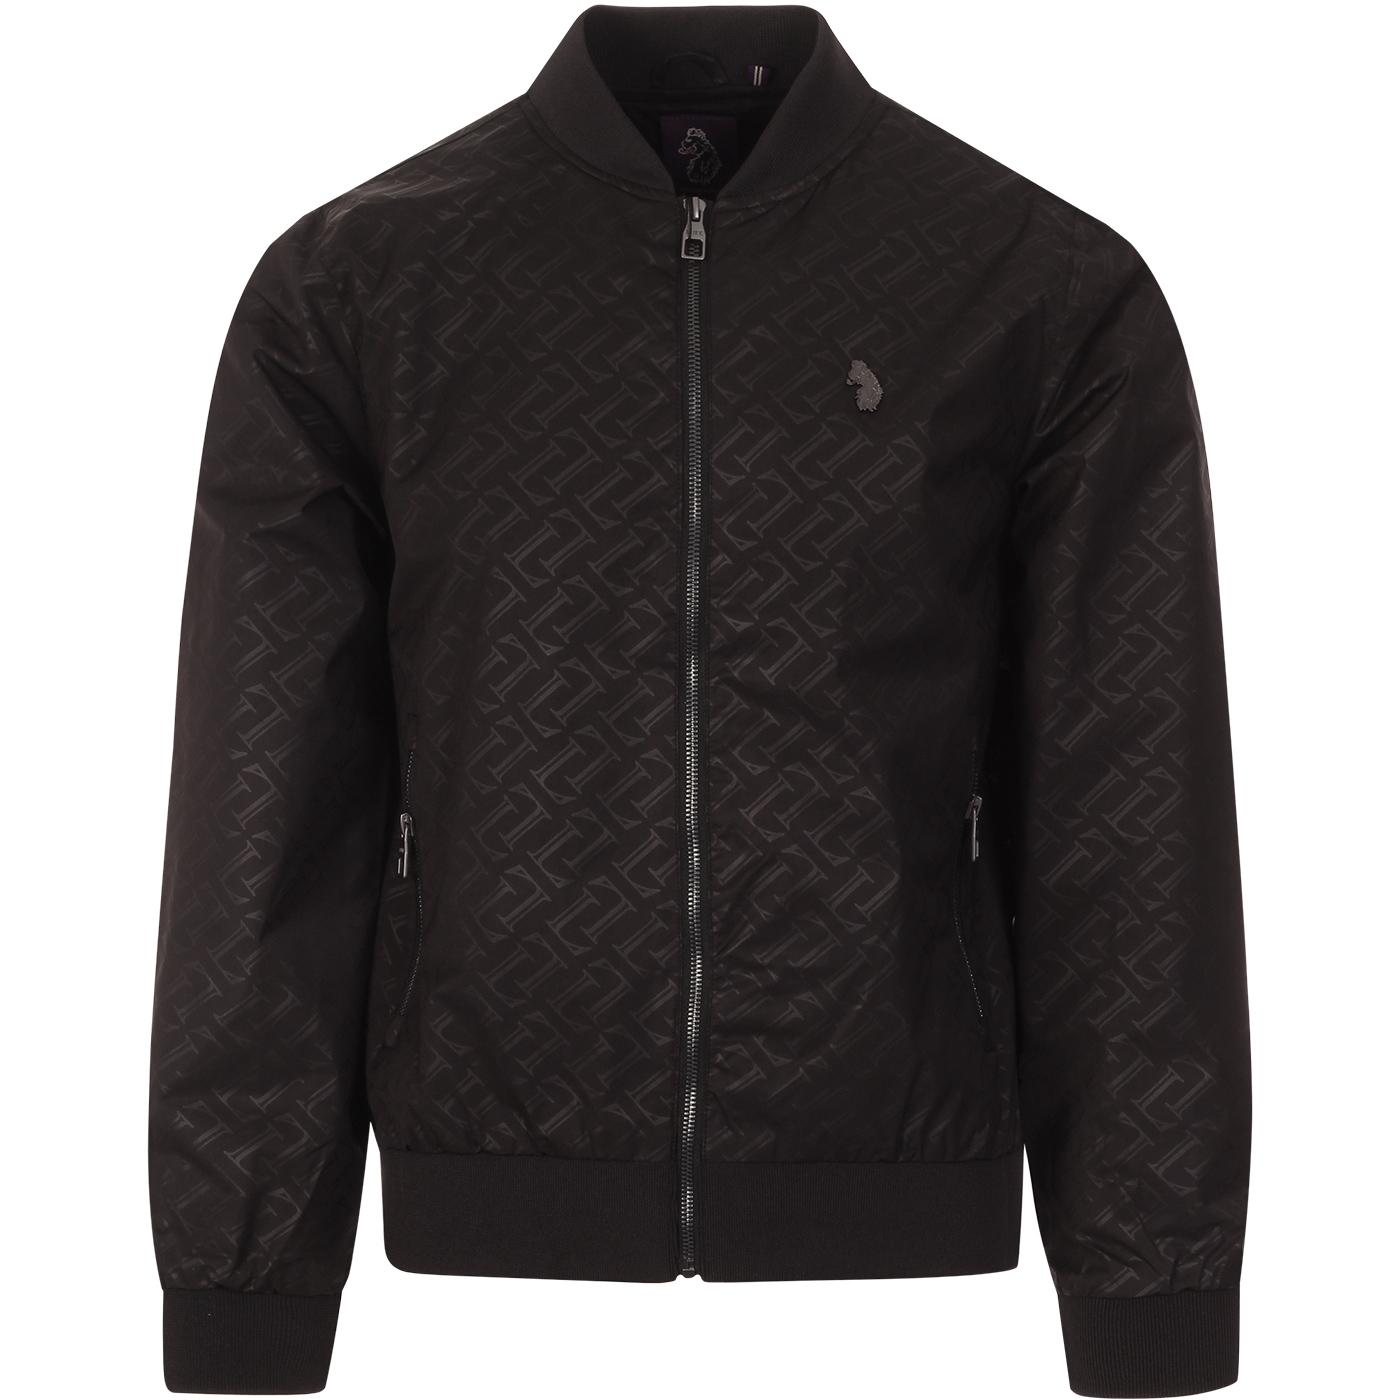 Night Owl LUKE Men's Signature Bomber Jacket BLACK